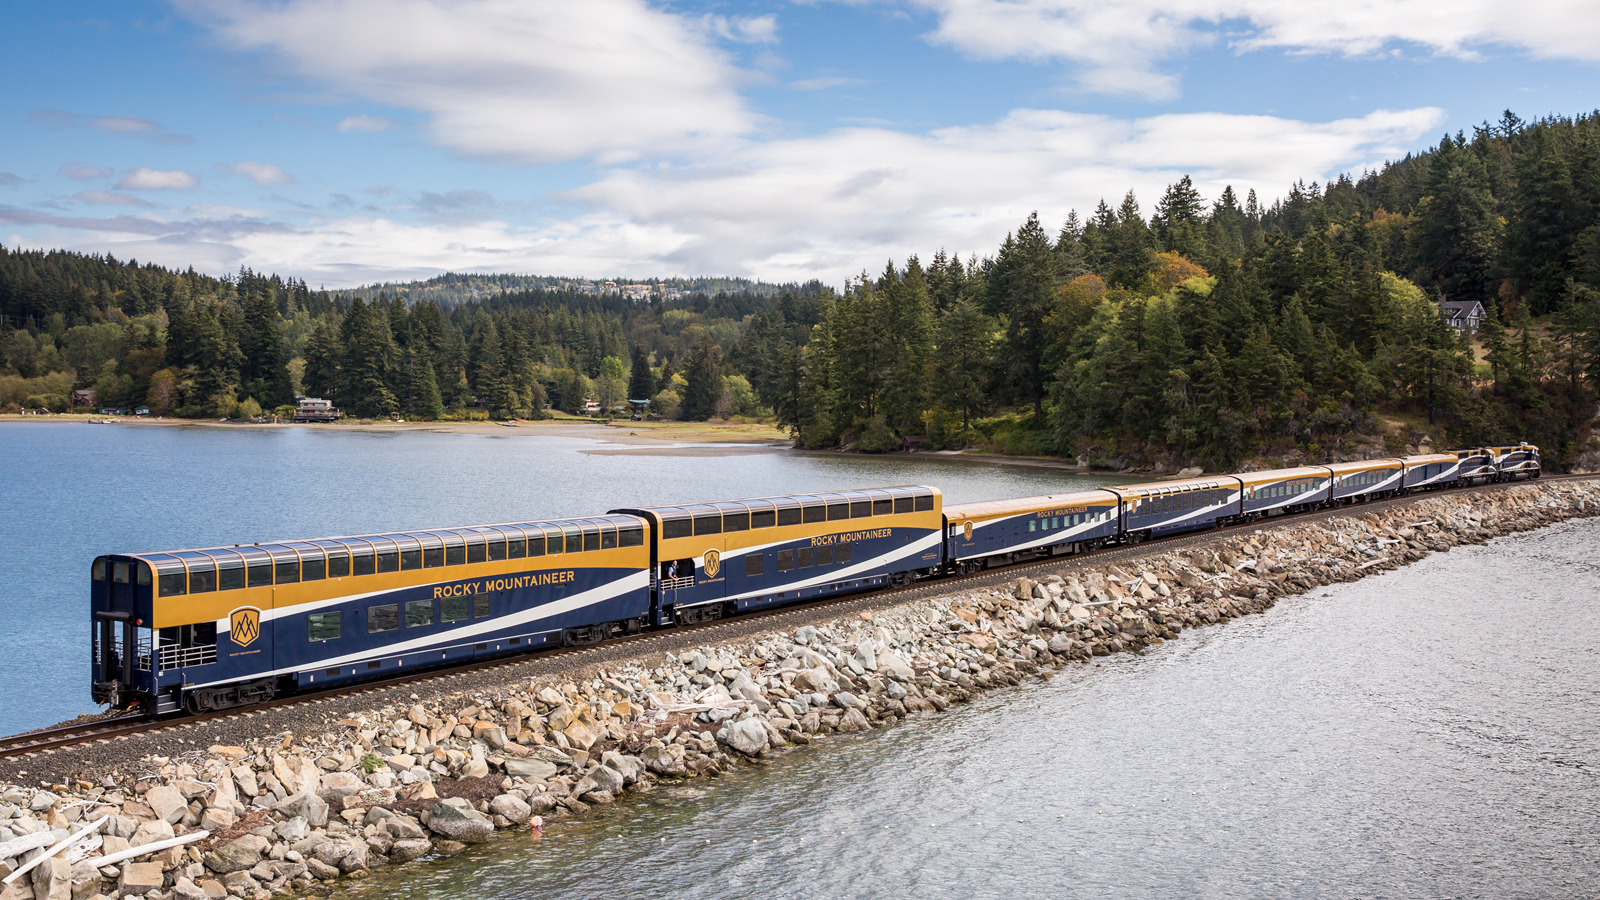 Rocky Mountaineer traveling along Chuckanut Bay